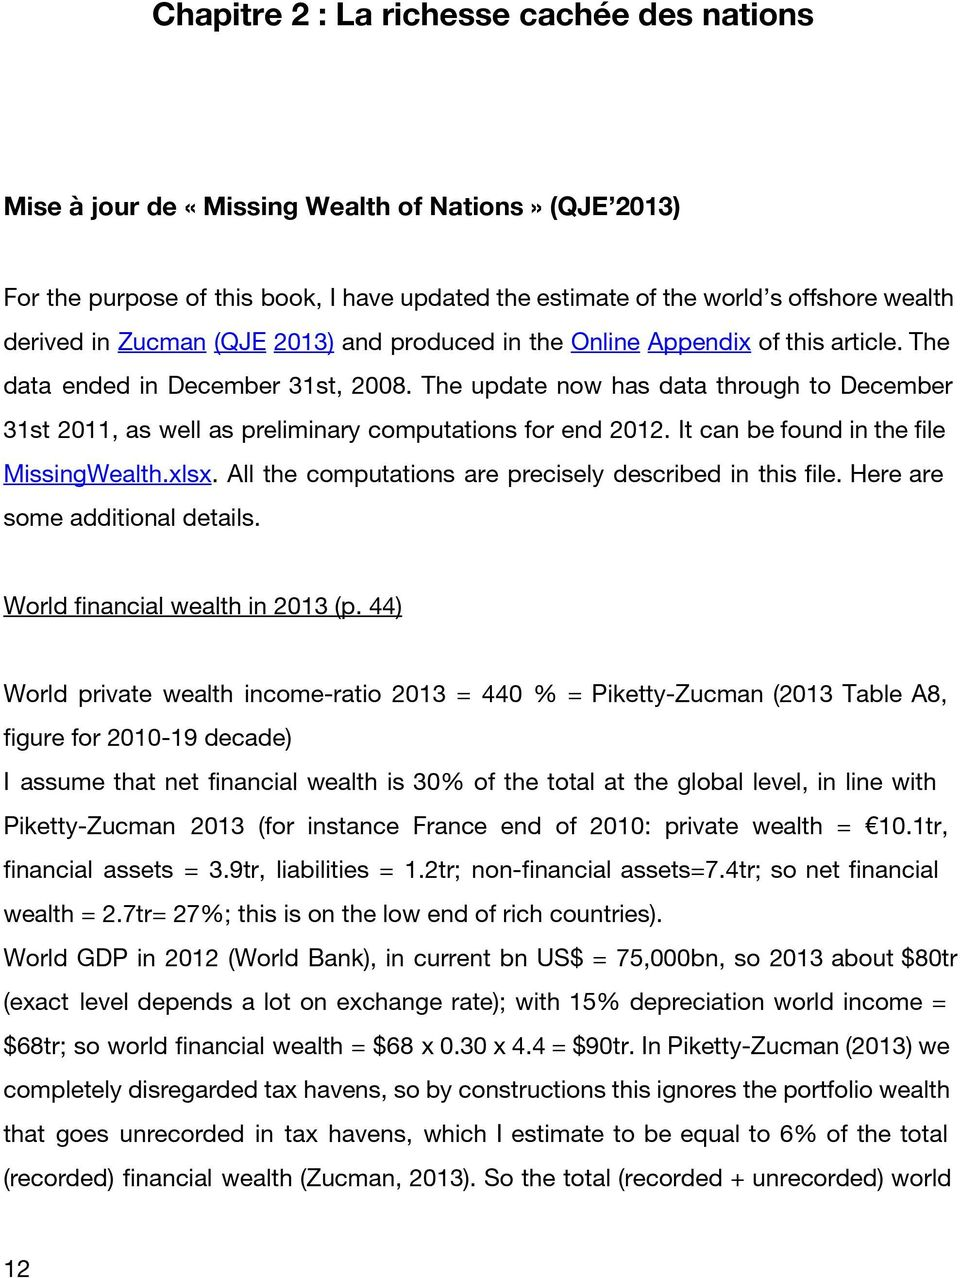 The update now has data through to December 31st 2011, as well as preliminary computations for end 2012. It can be found in the file MissingWealth.xlsx.